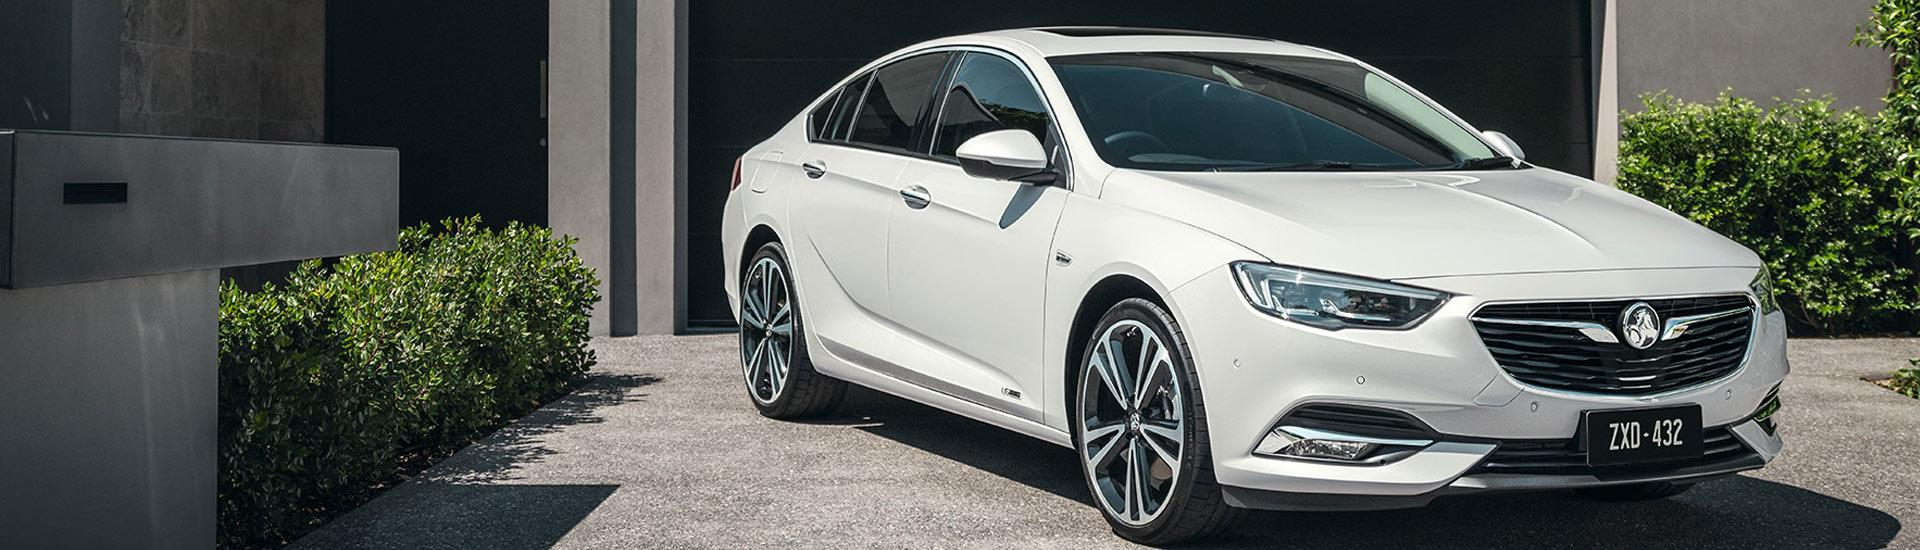 New Holden Commodore Wagon Cars For Sale - carsales.com.au